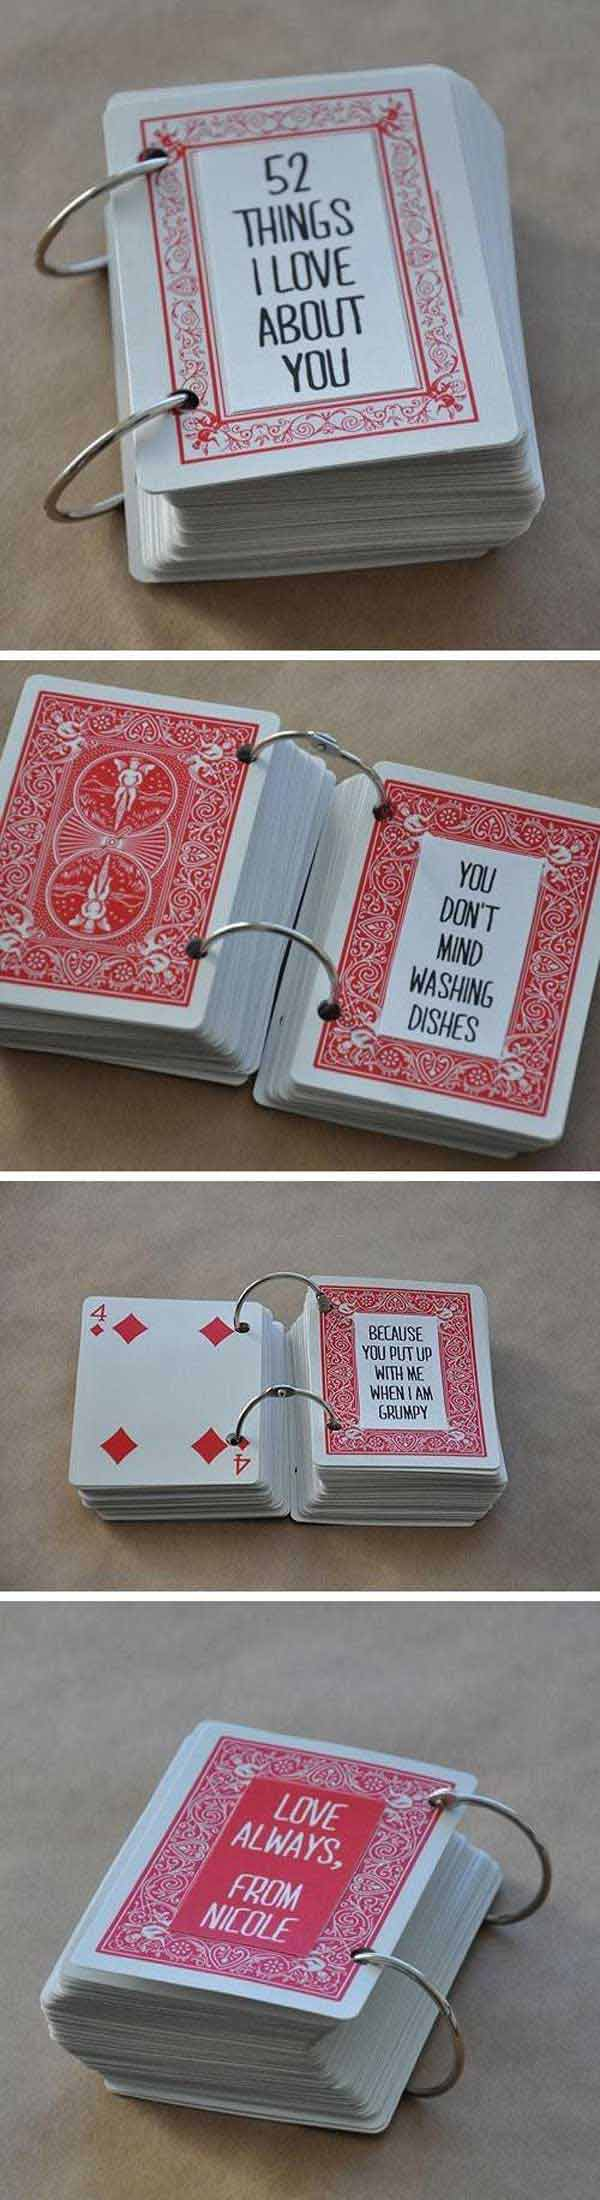 DIY-Valentine-s-day-gifts-cards-15